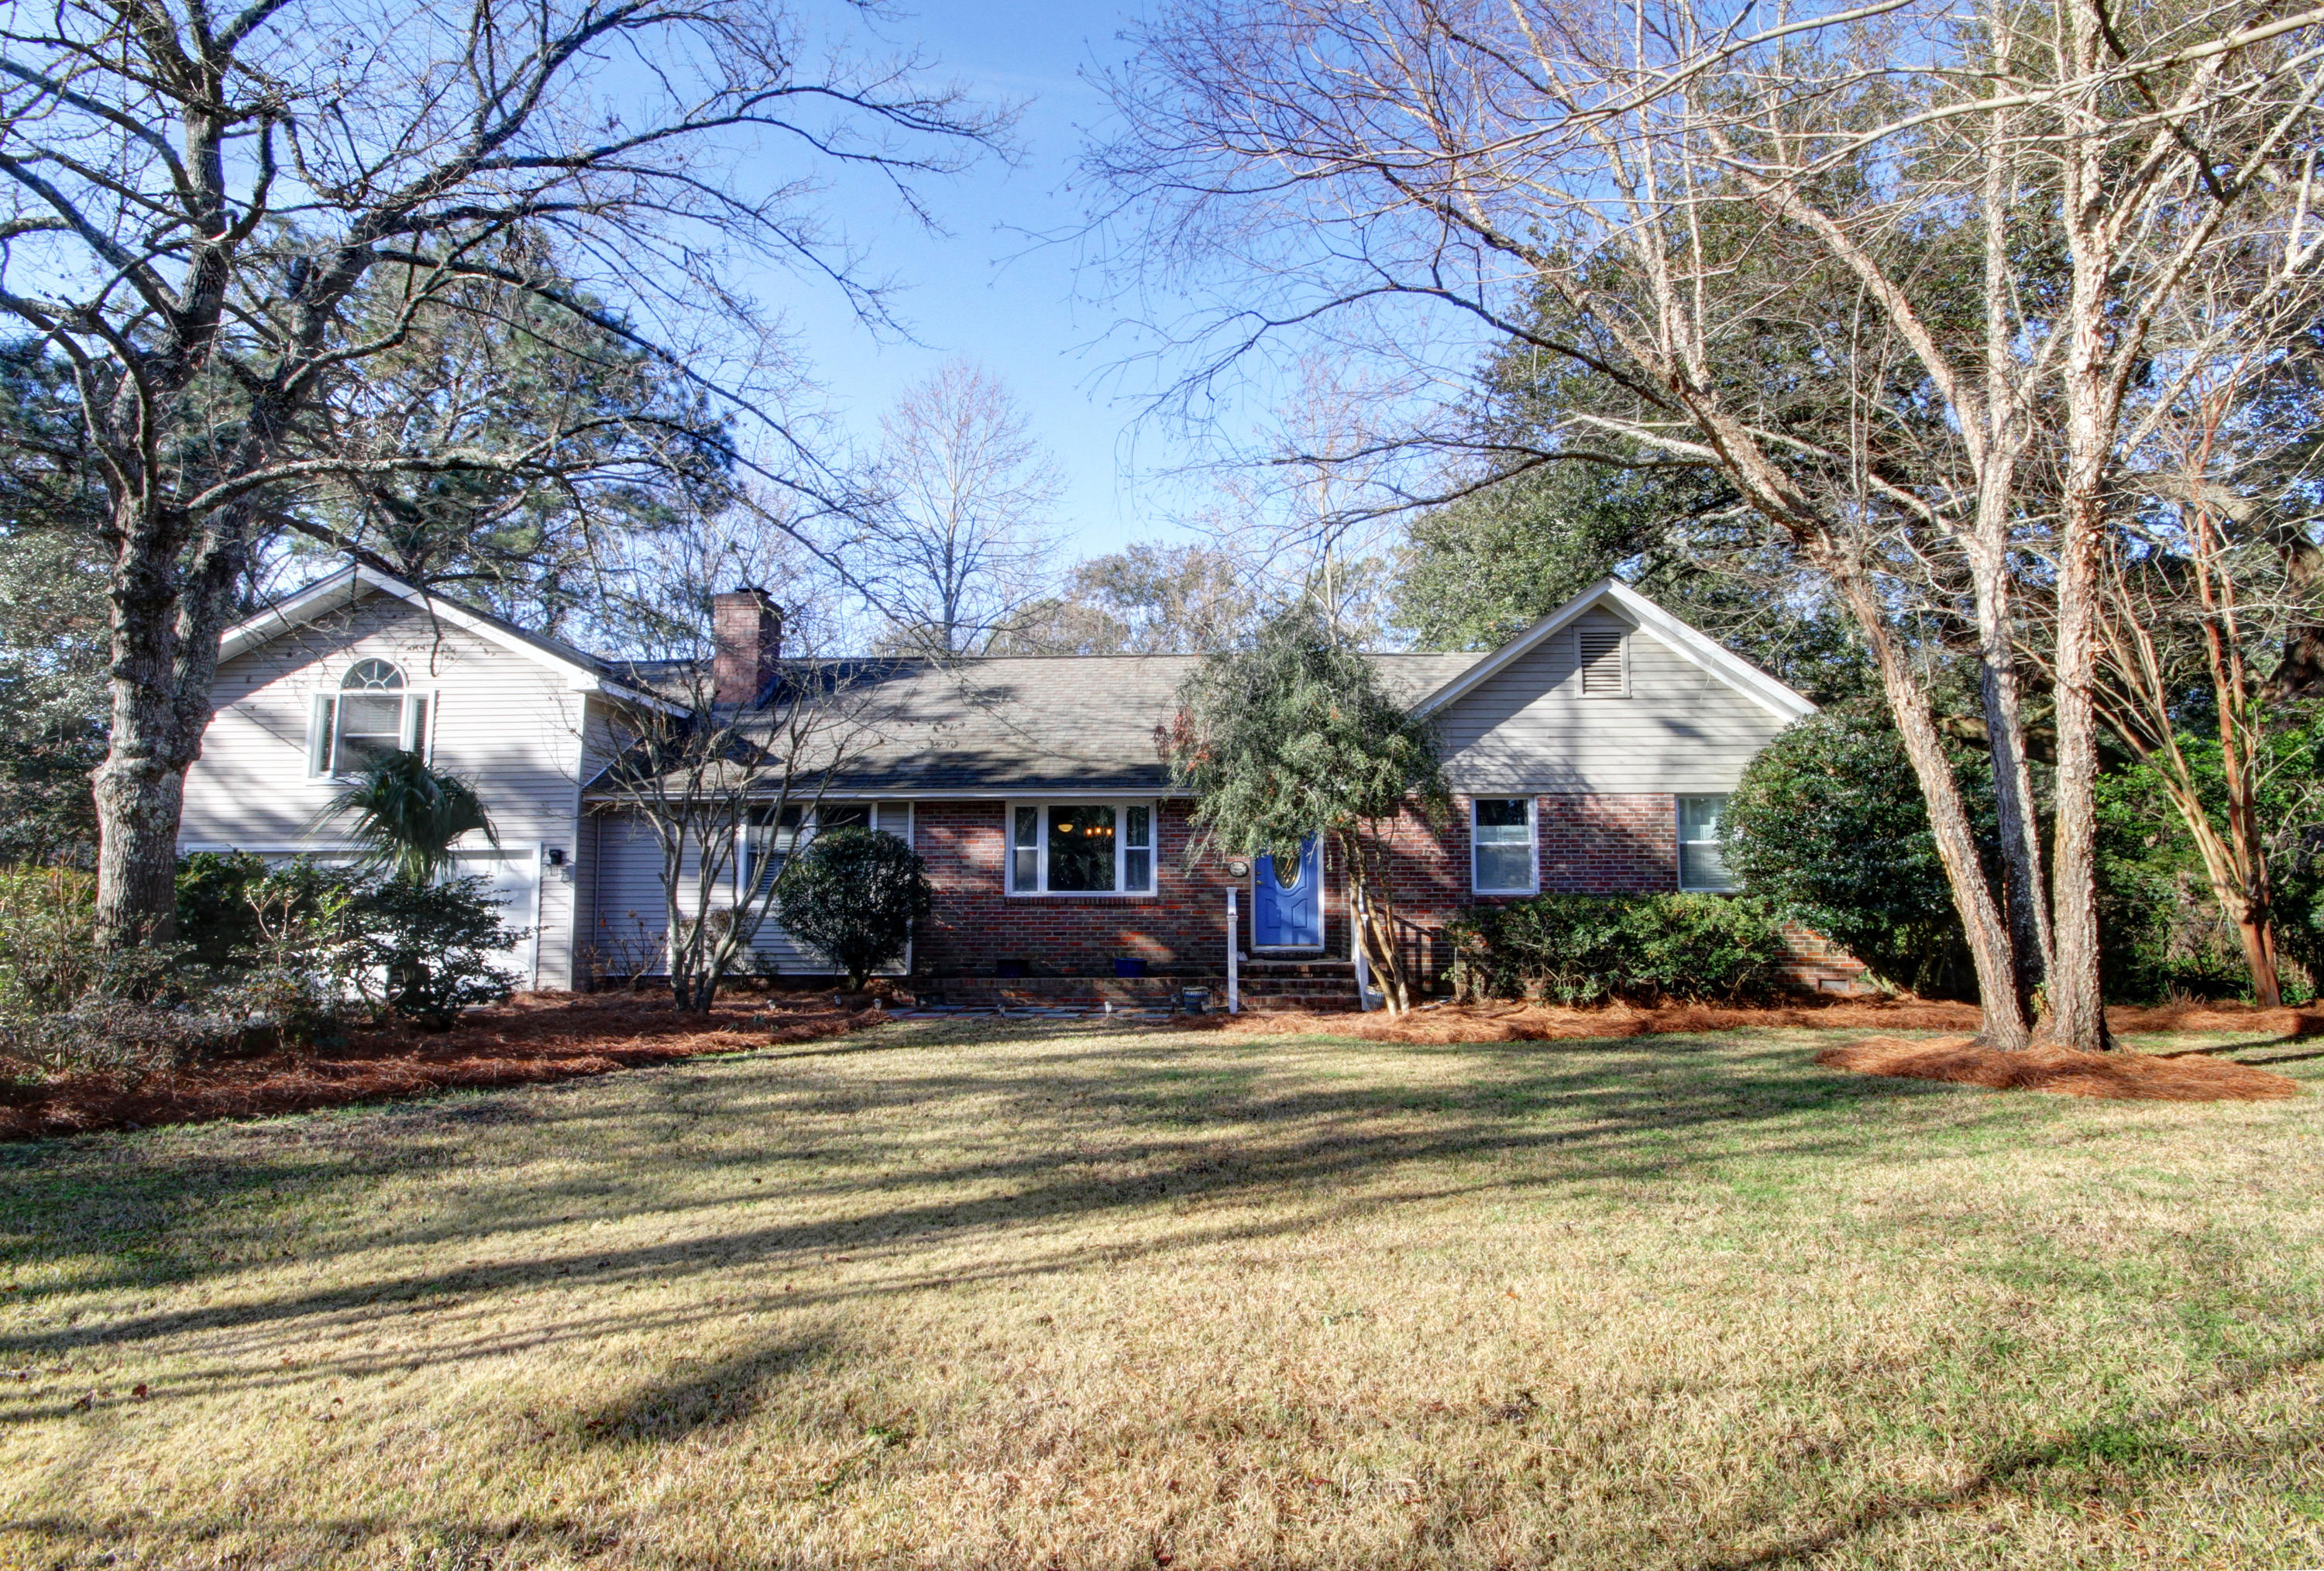 Home for sale 968 Cliffwood Drive, The Groves, Mt. Pleasant, SC